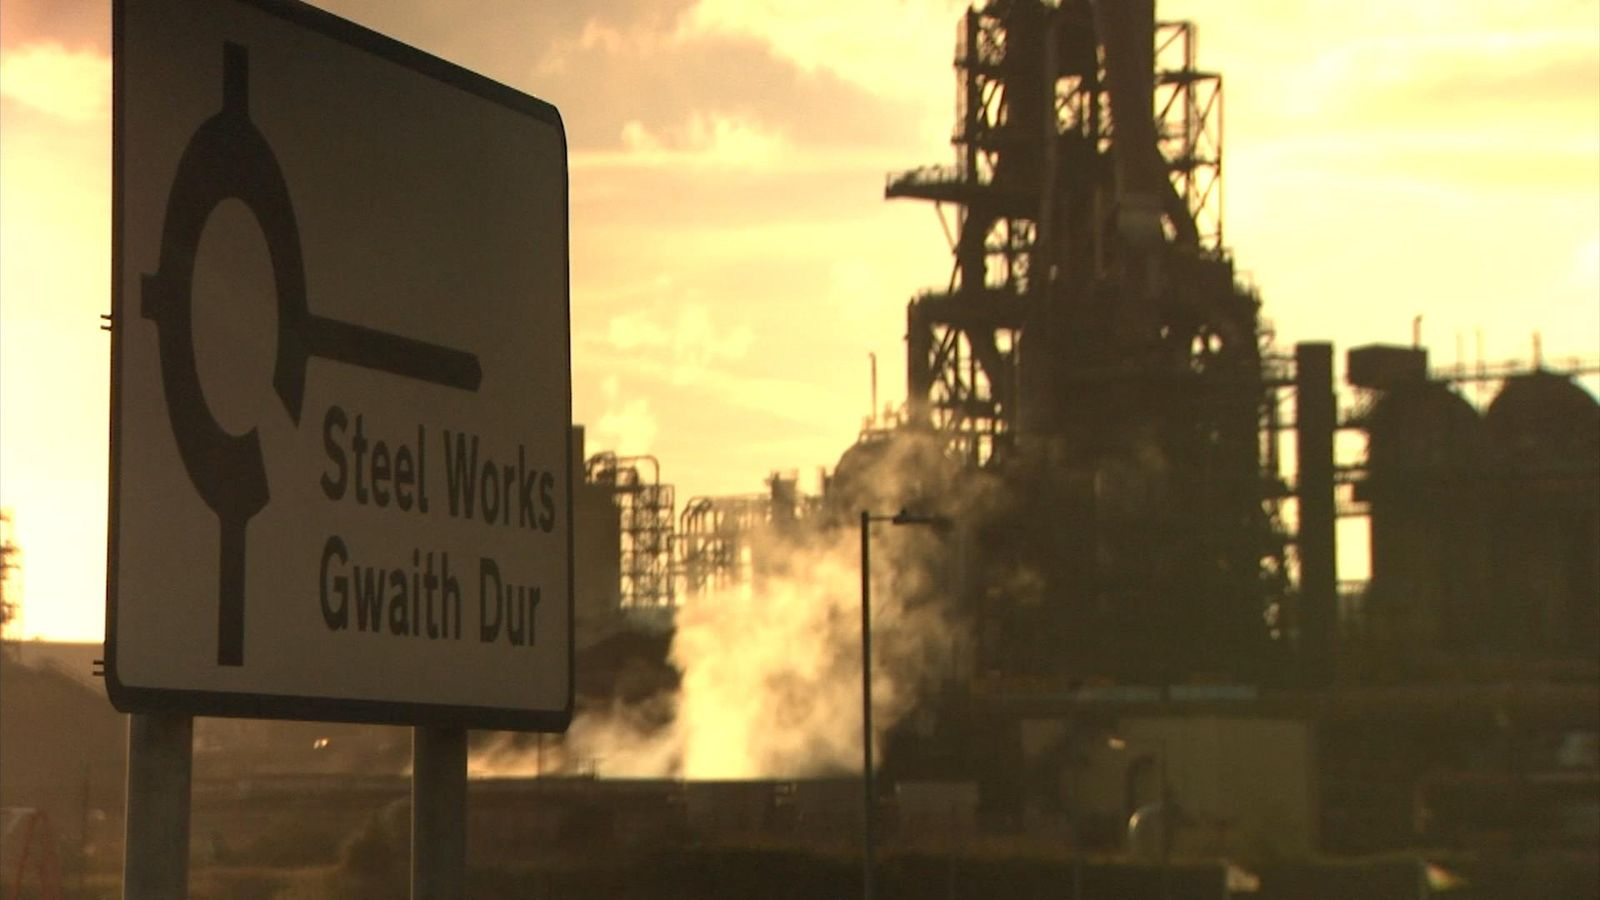 Thousands of people are employed at the steelworks in Port Talbot